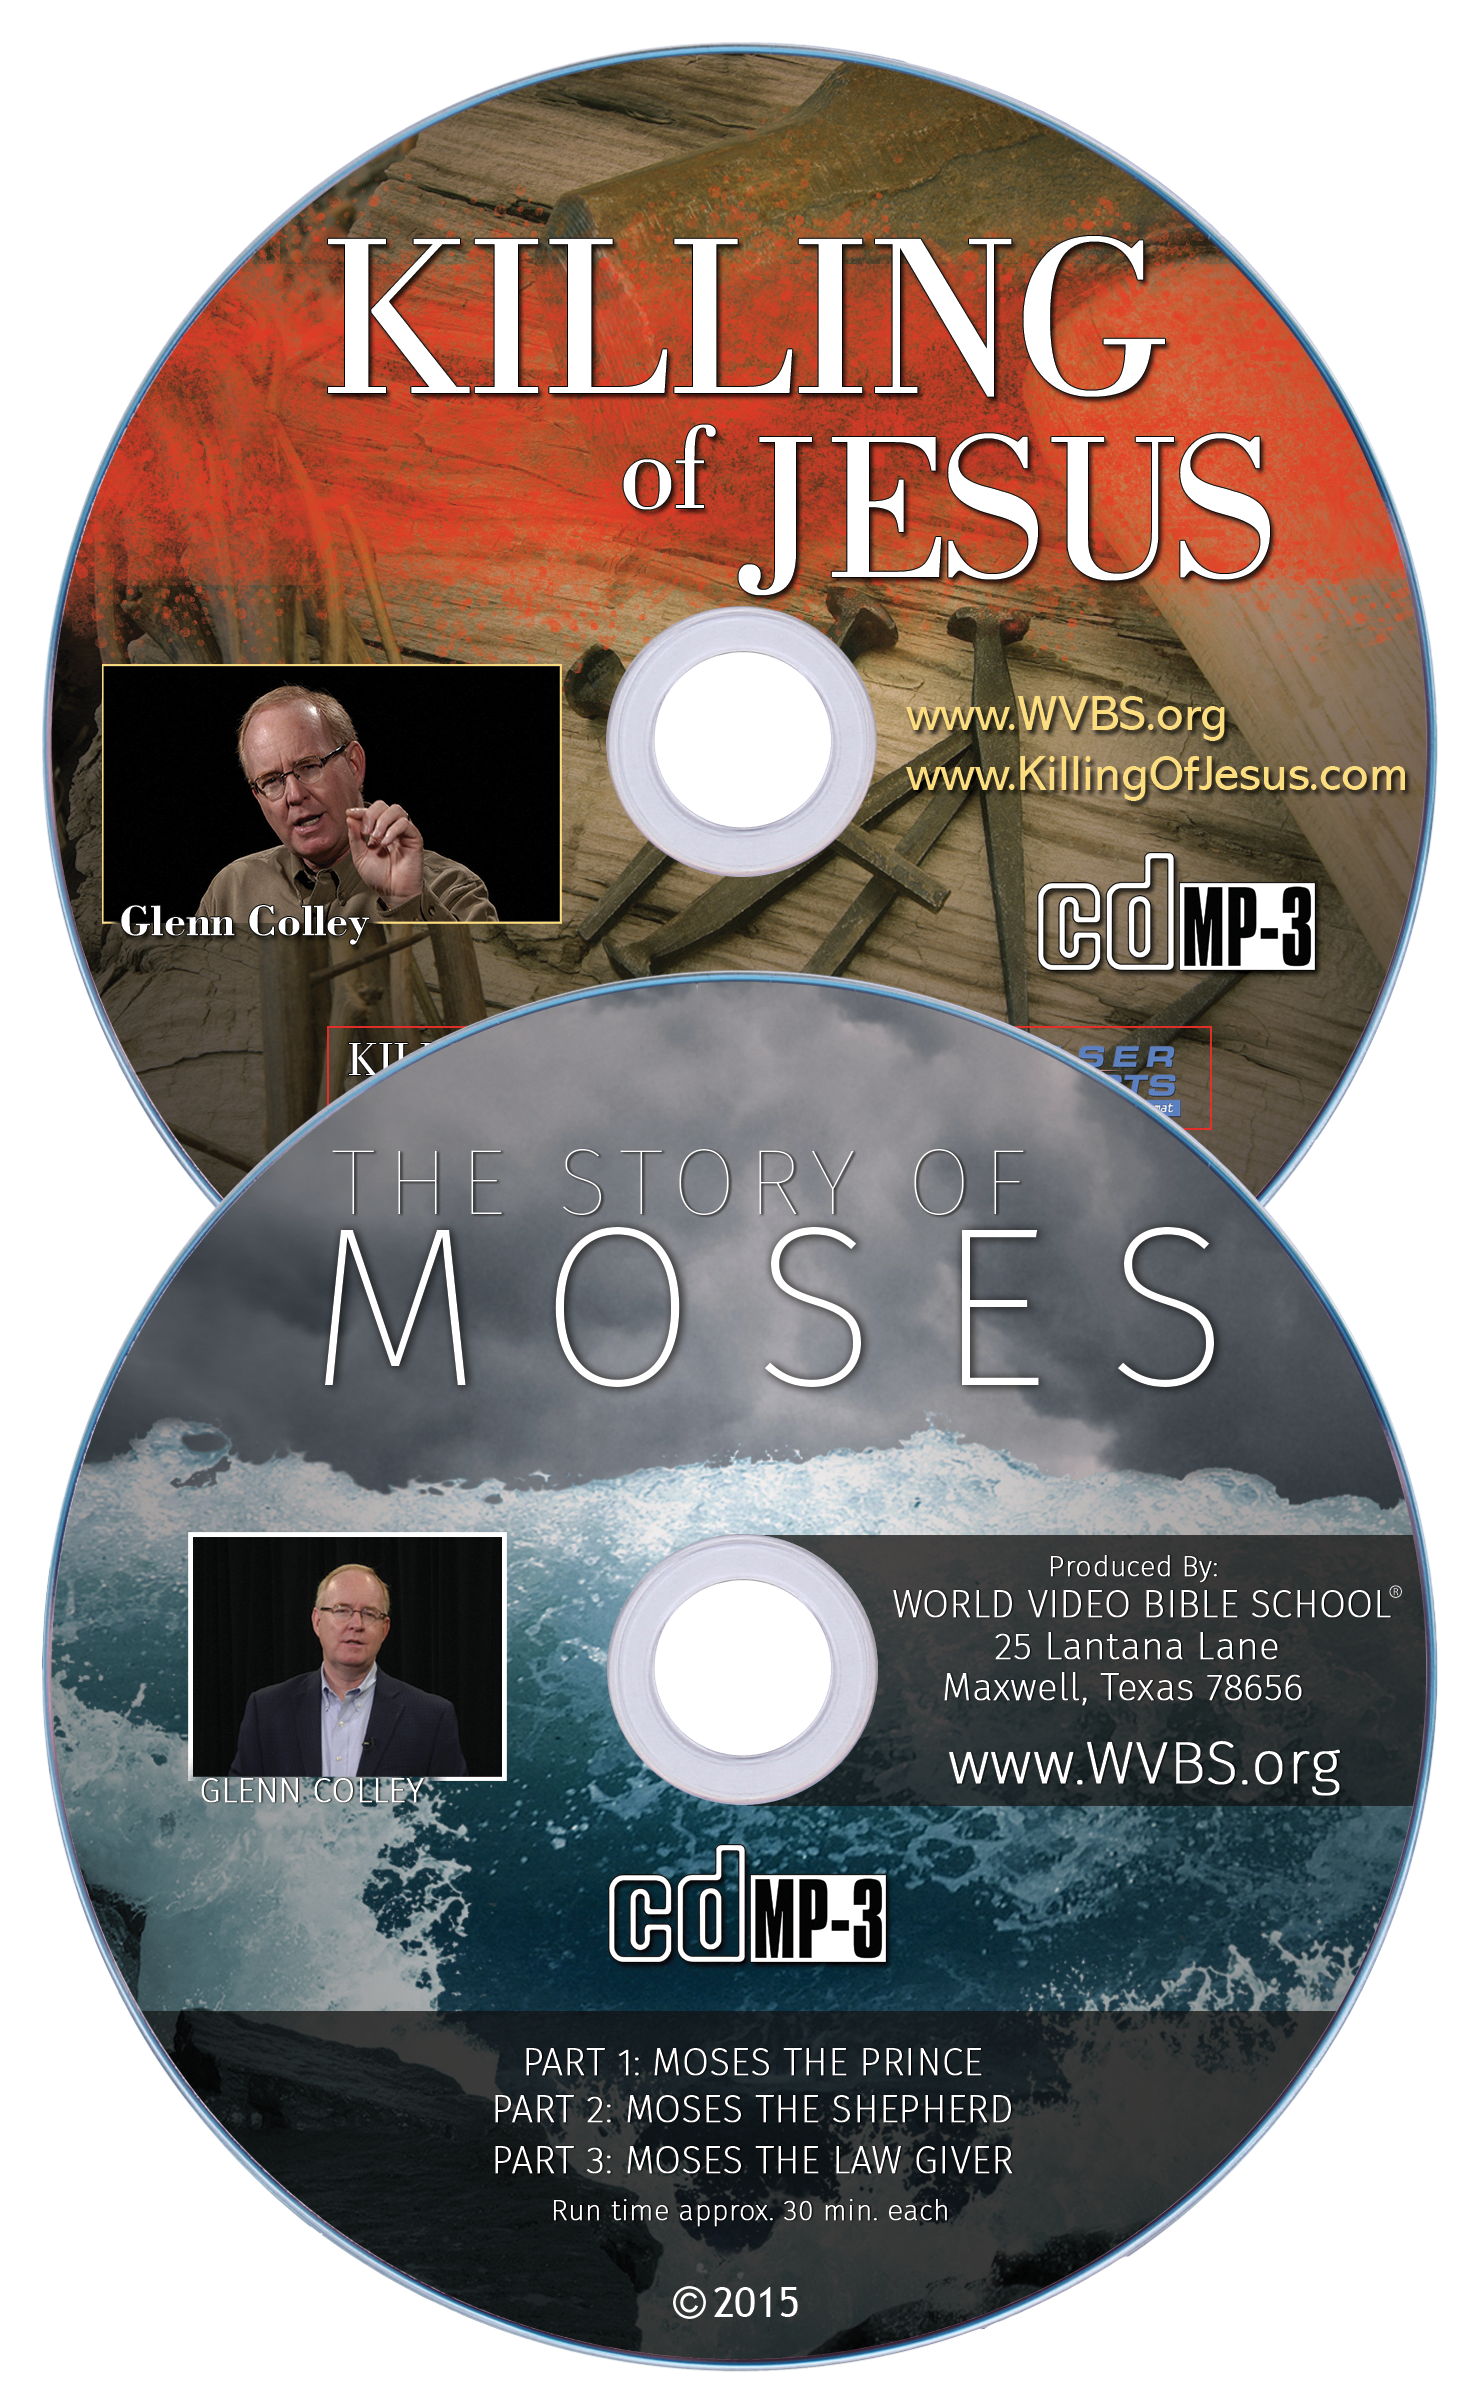 Killing of Jesus & Story of Moses MP3s